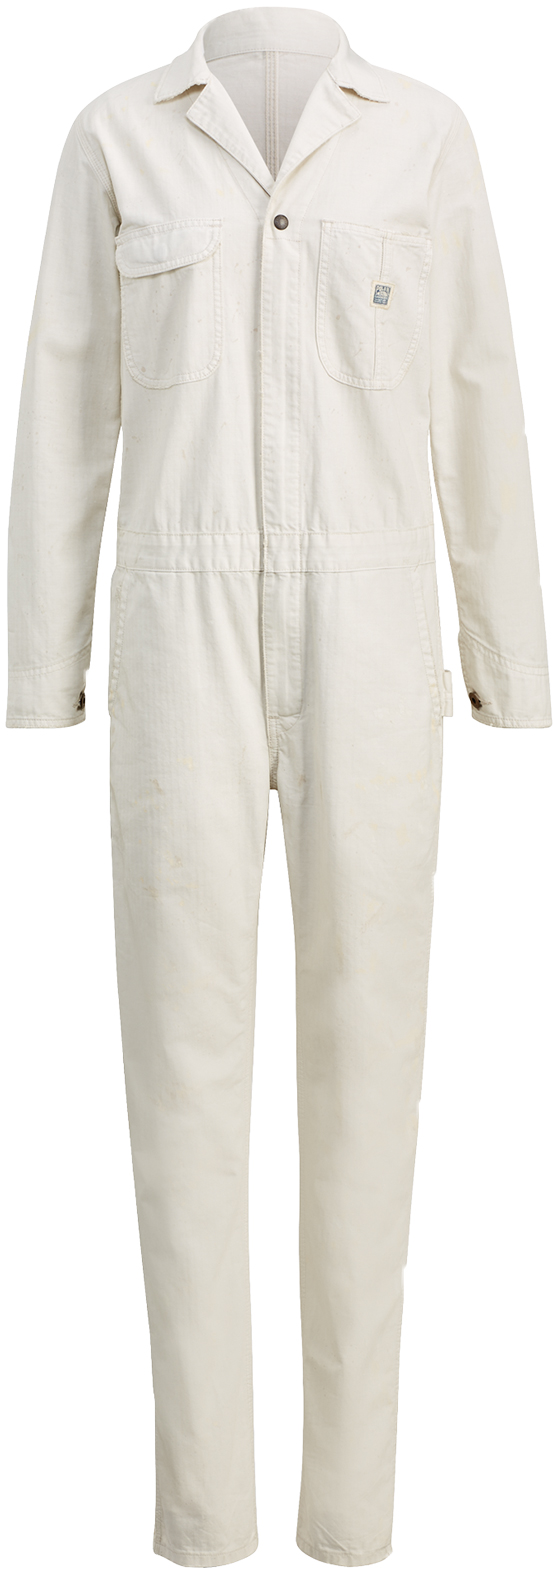 POLO RALPH LAUREN Cotton Herringbone Jumpsuit